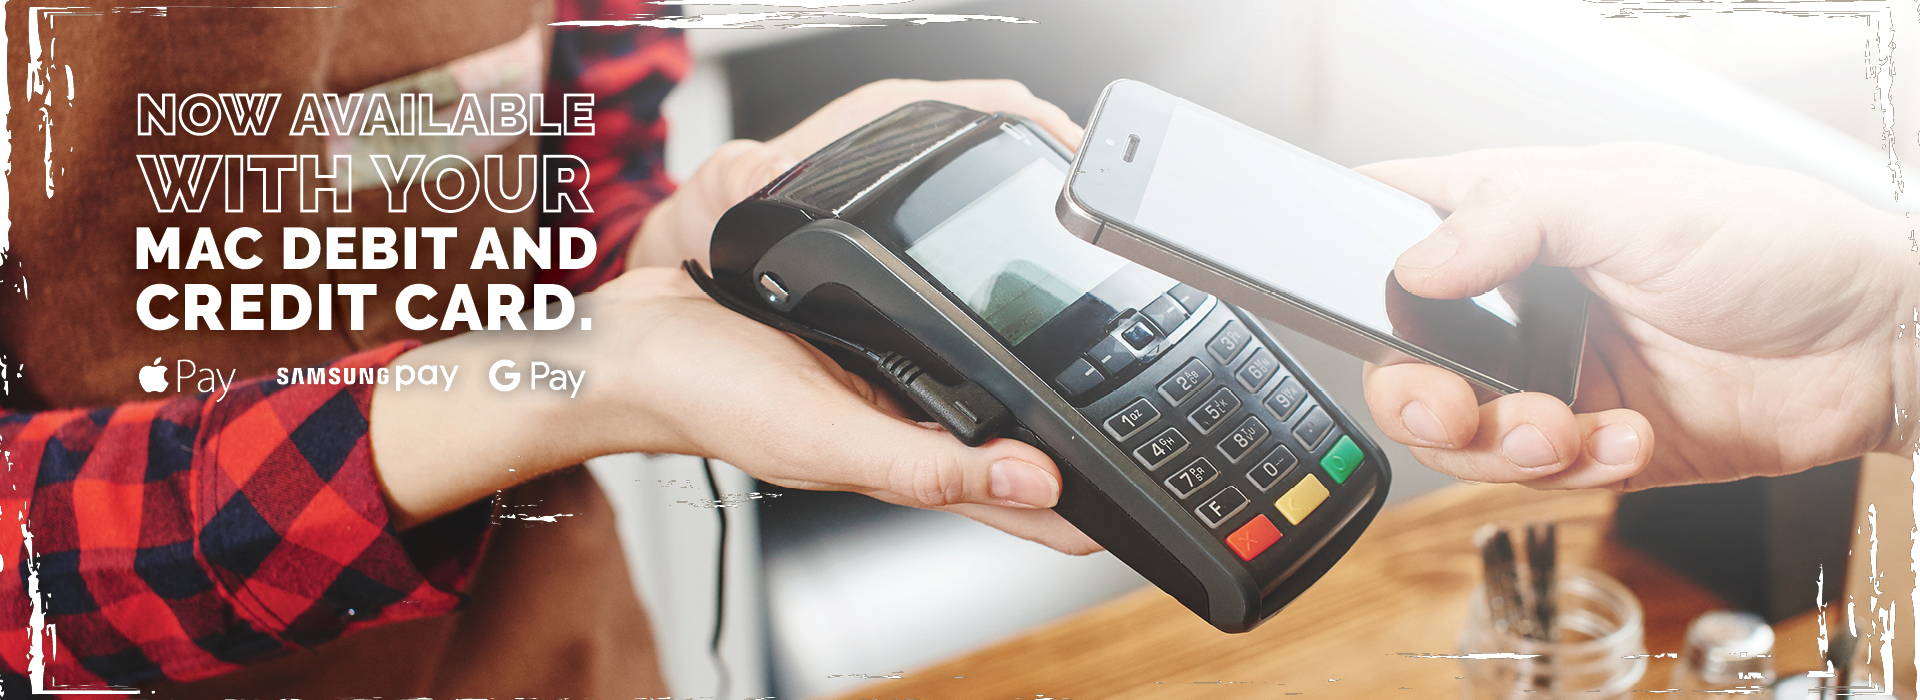 paying via phone